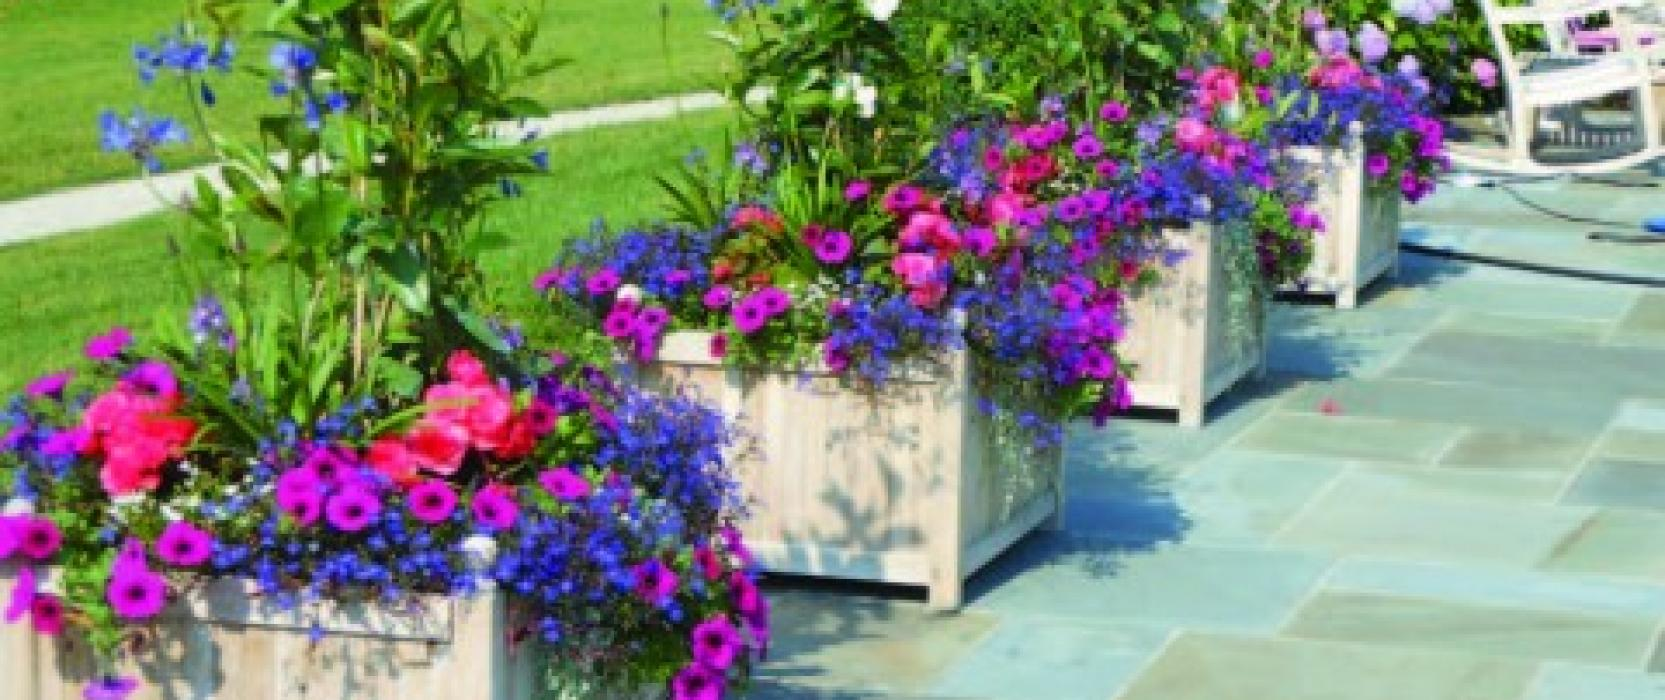 How to choose the best flower container for your home